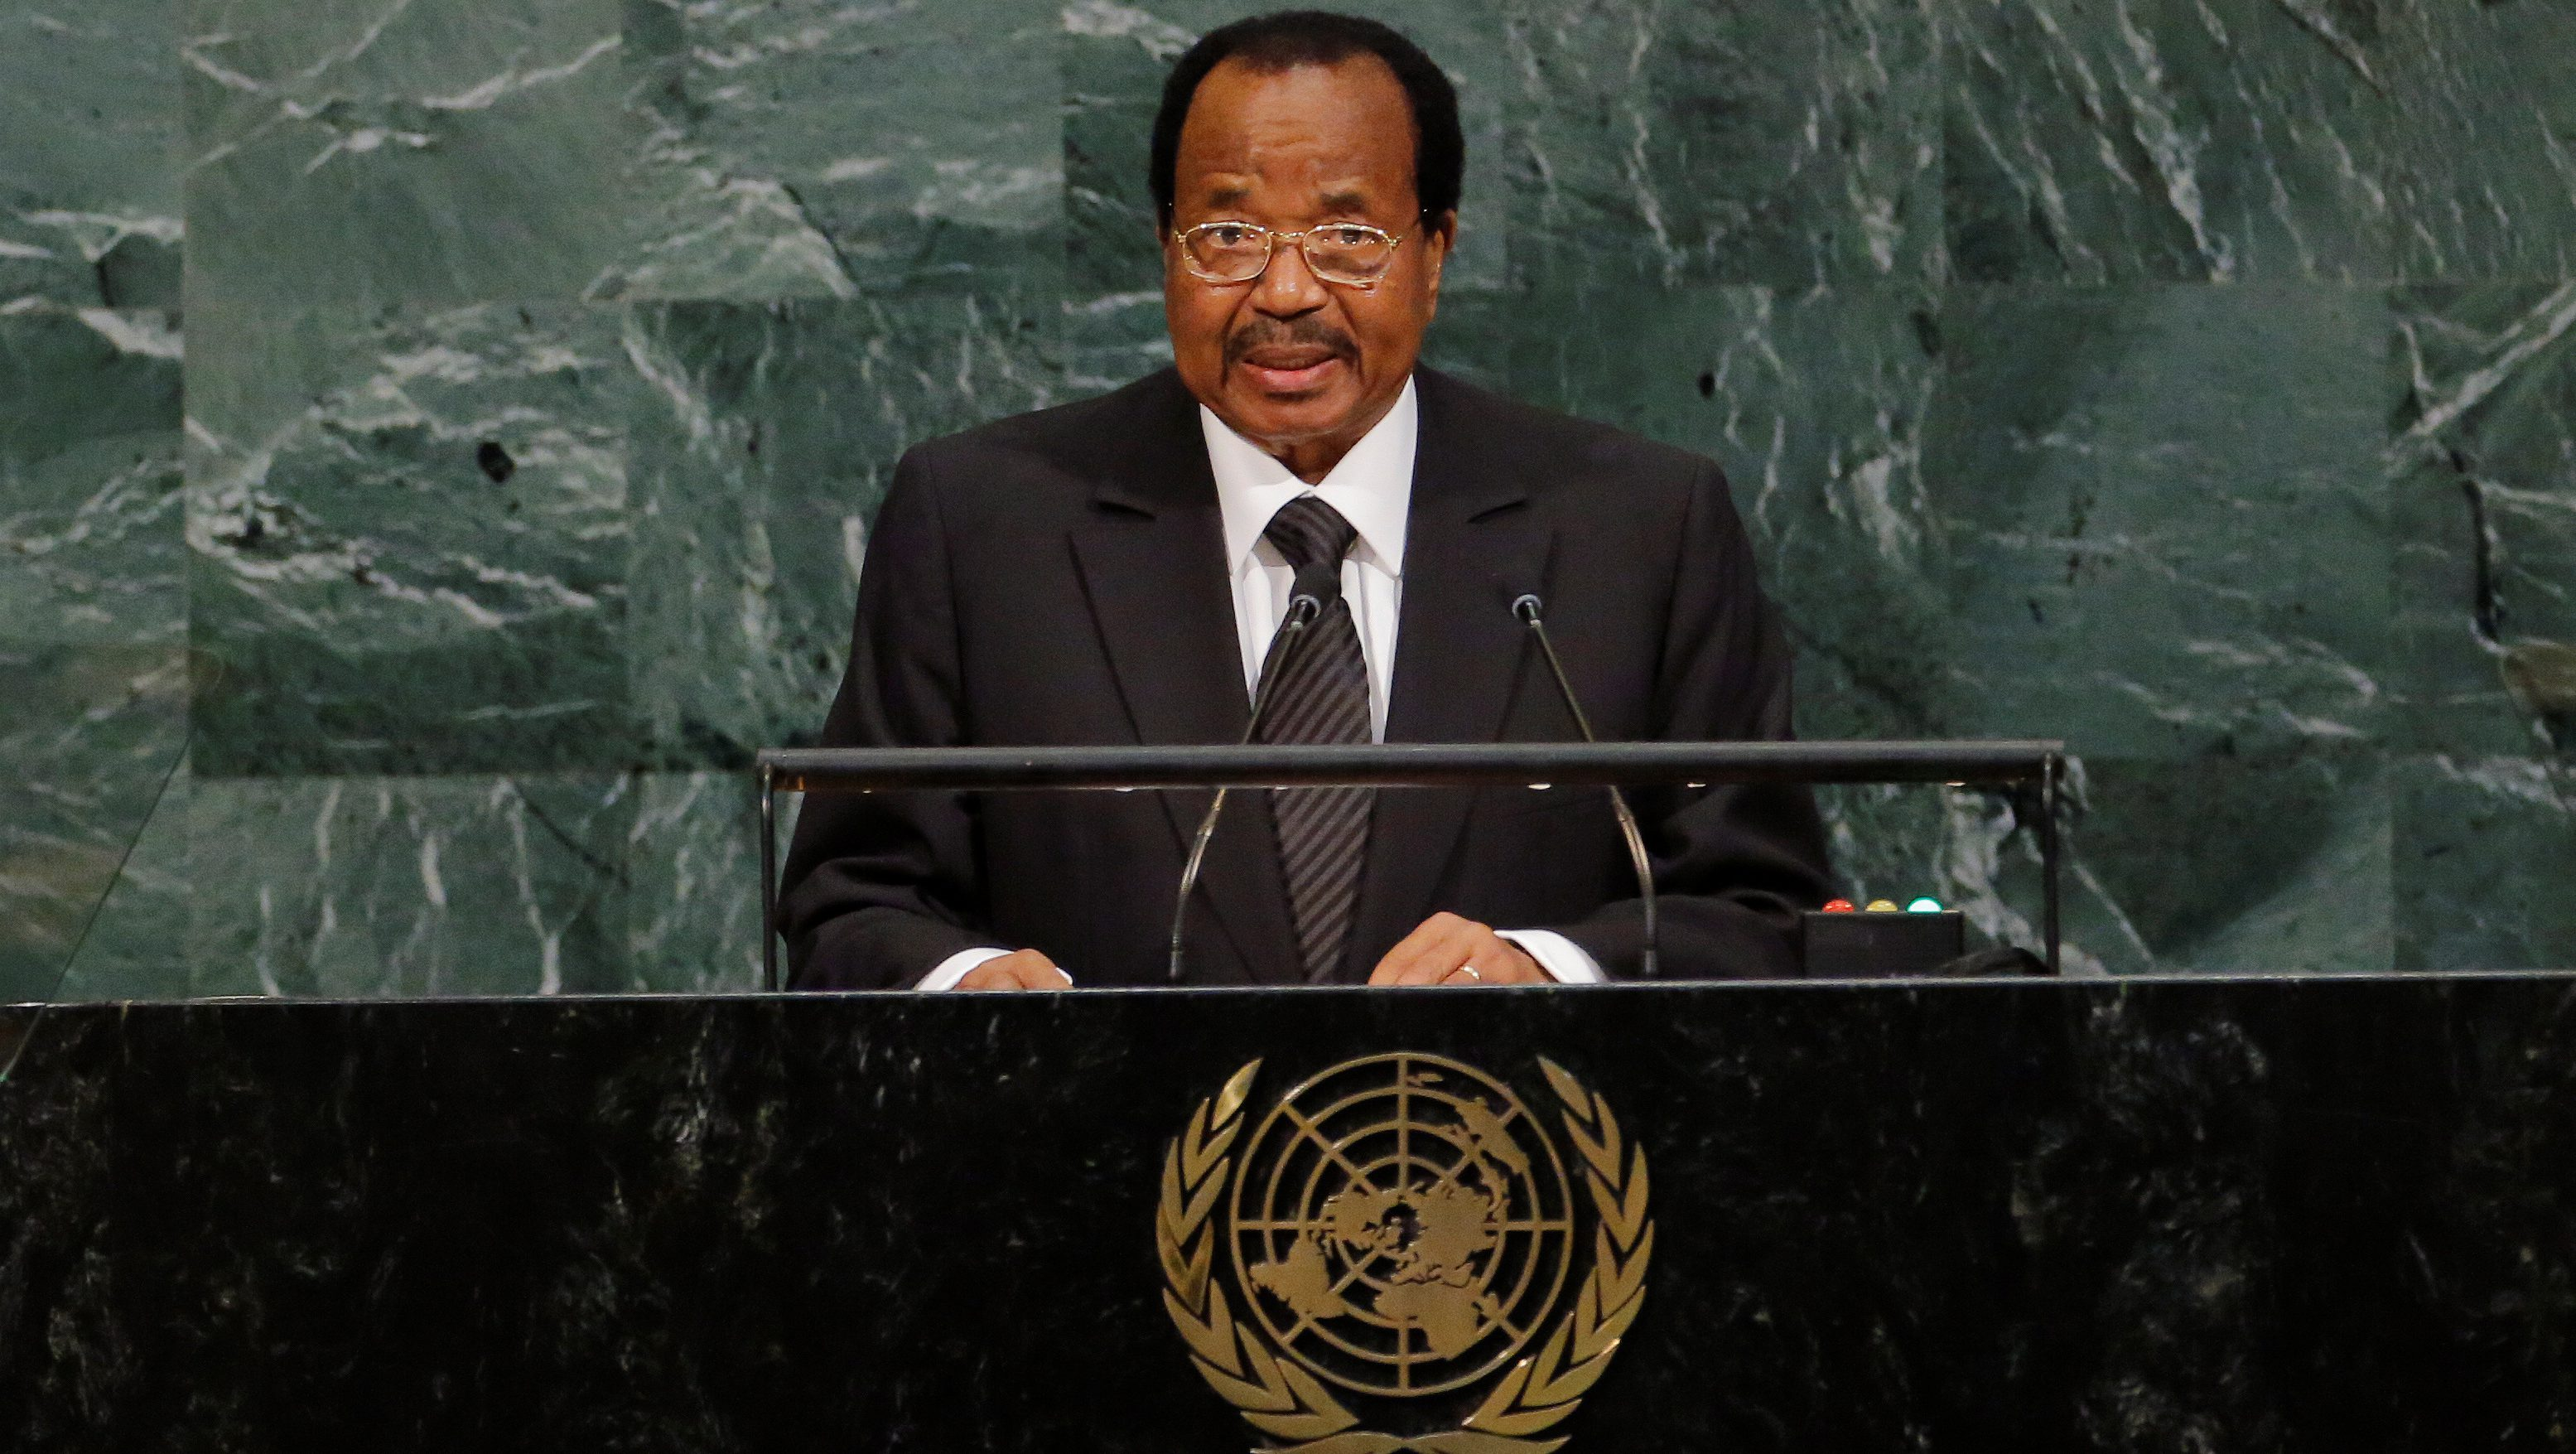 President of Cameroon, Paul Biya, addresses the 72nd United Nations General Assembly at U.N. headquarters in New York